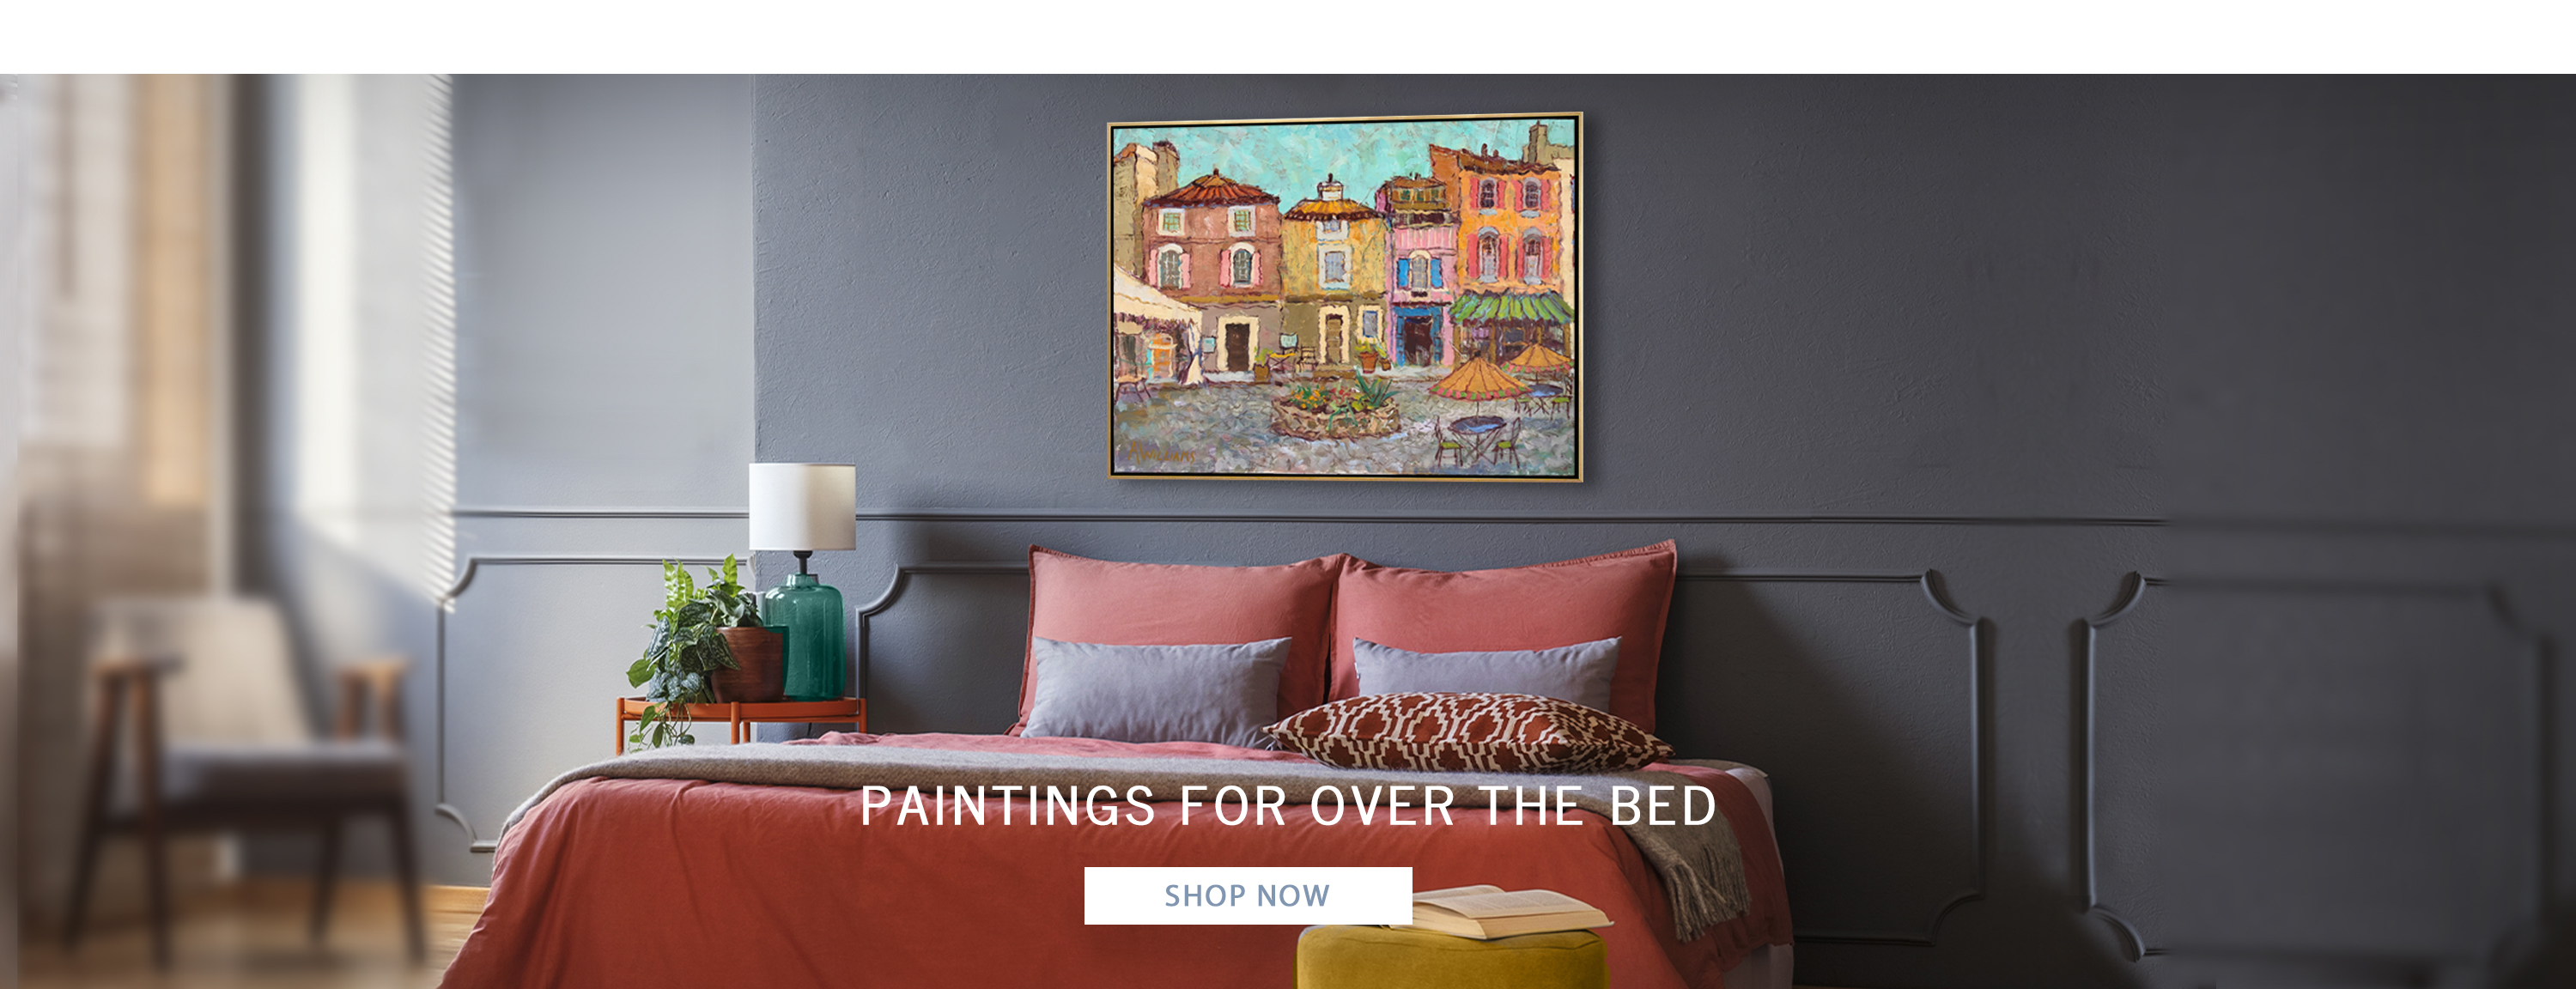 Paintings for over the bed